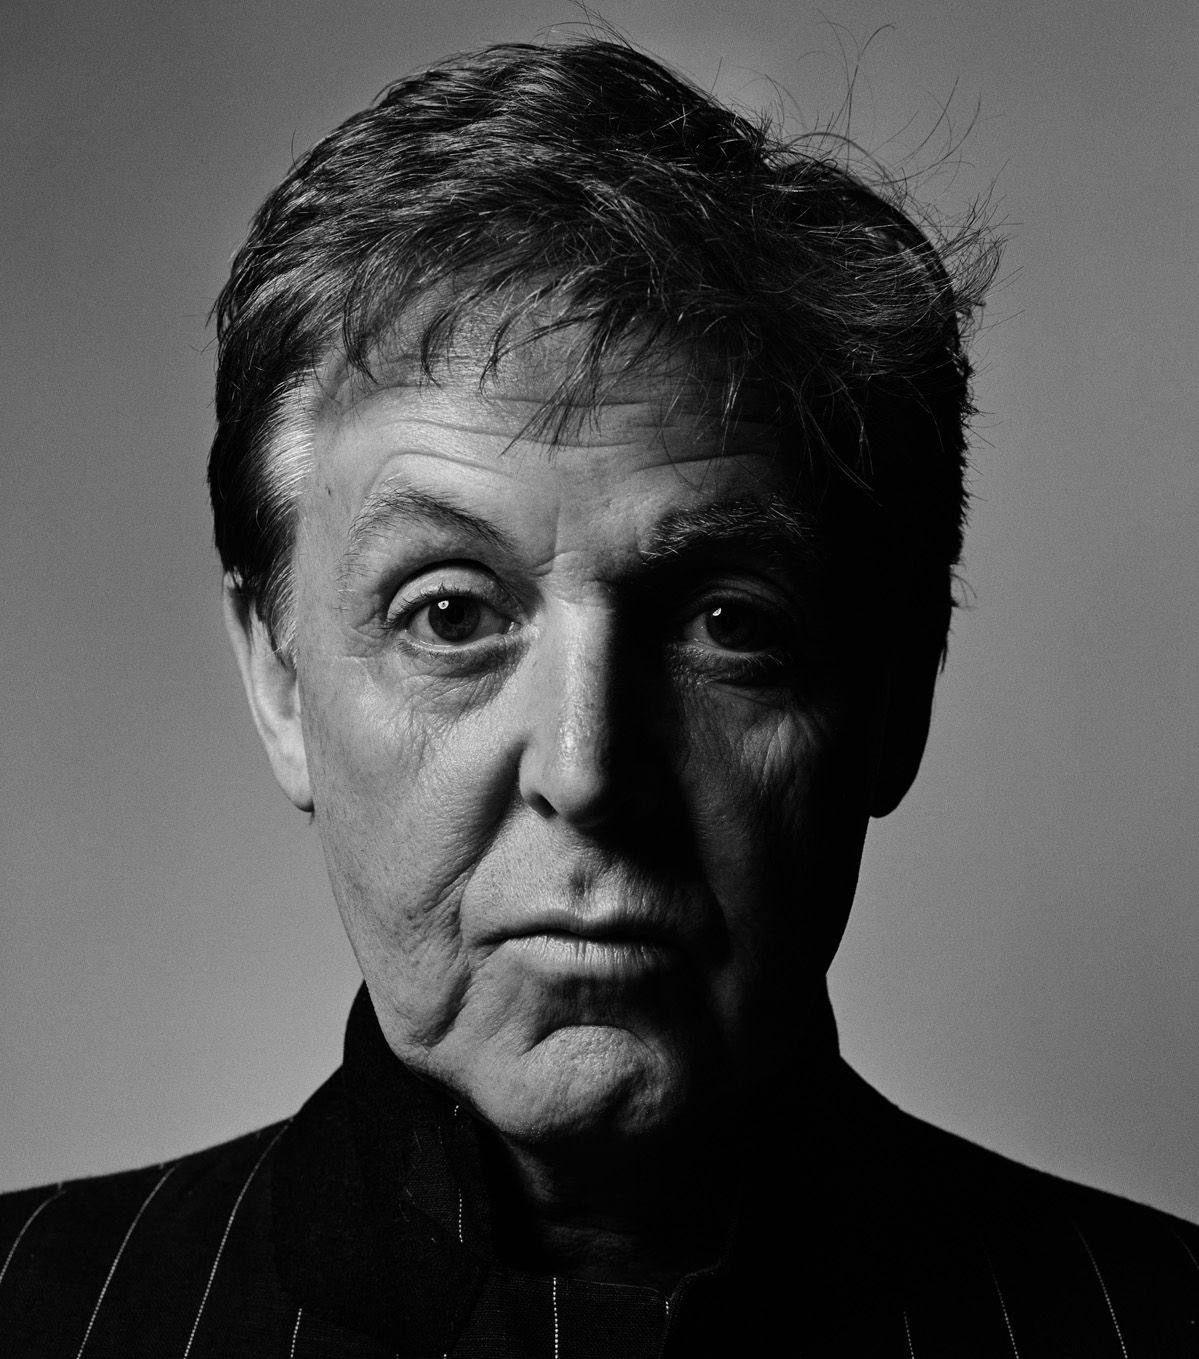 Paul McCartney Returns To New York On The All-New 2013